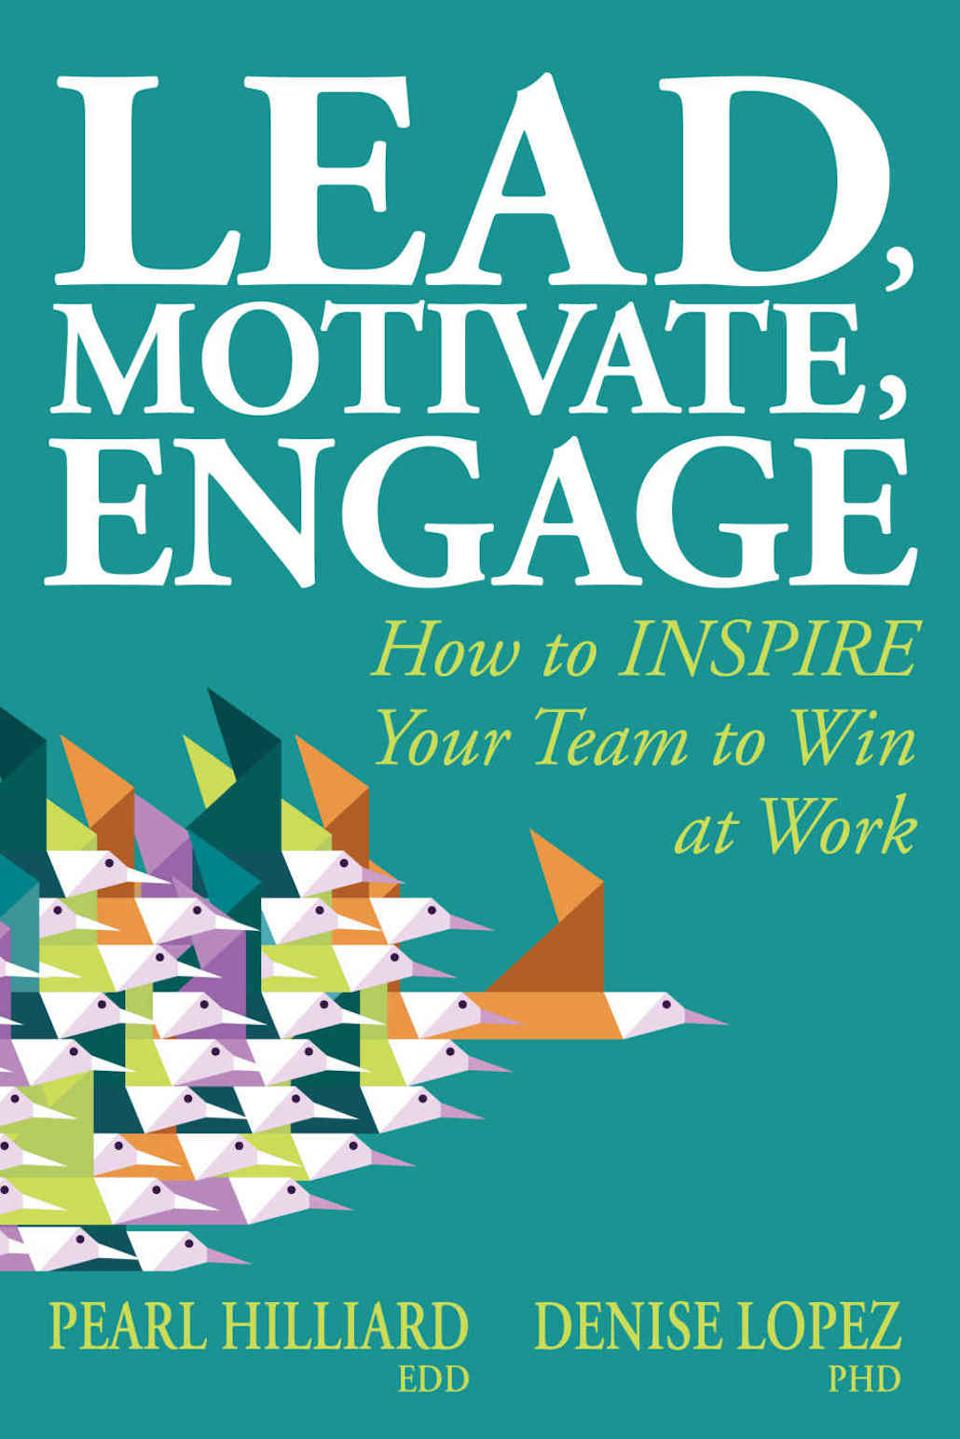 Lead, Motivate, Engage: How to INSPIRE Your Team to Win at Work by Pearl Hilliard and Denise Lopez